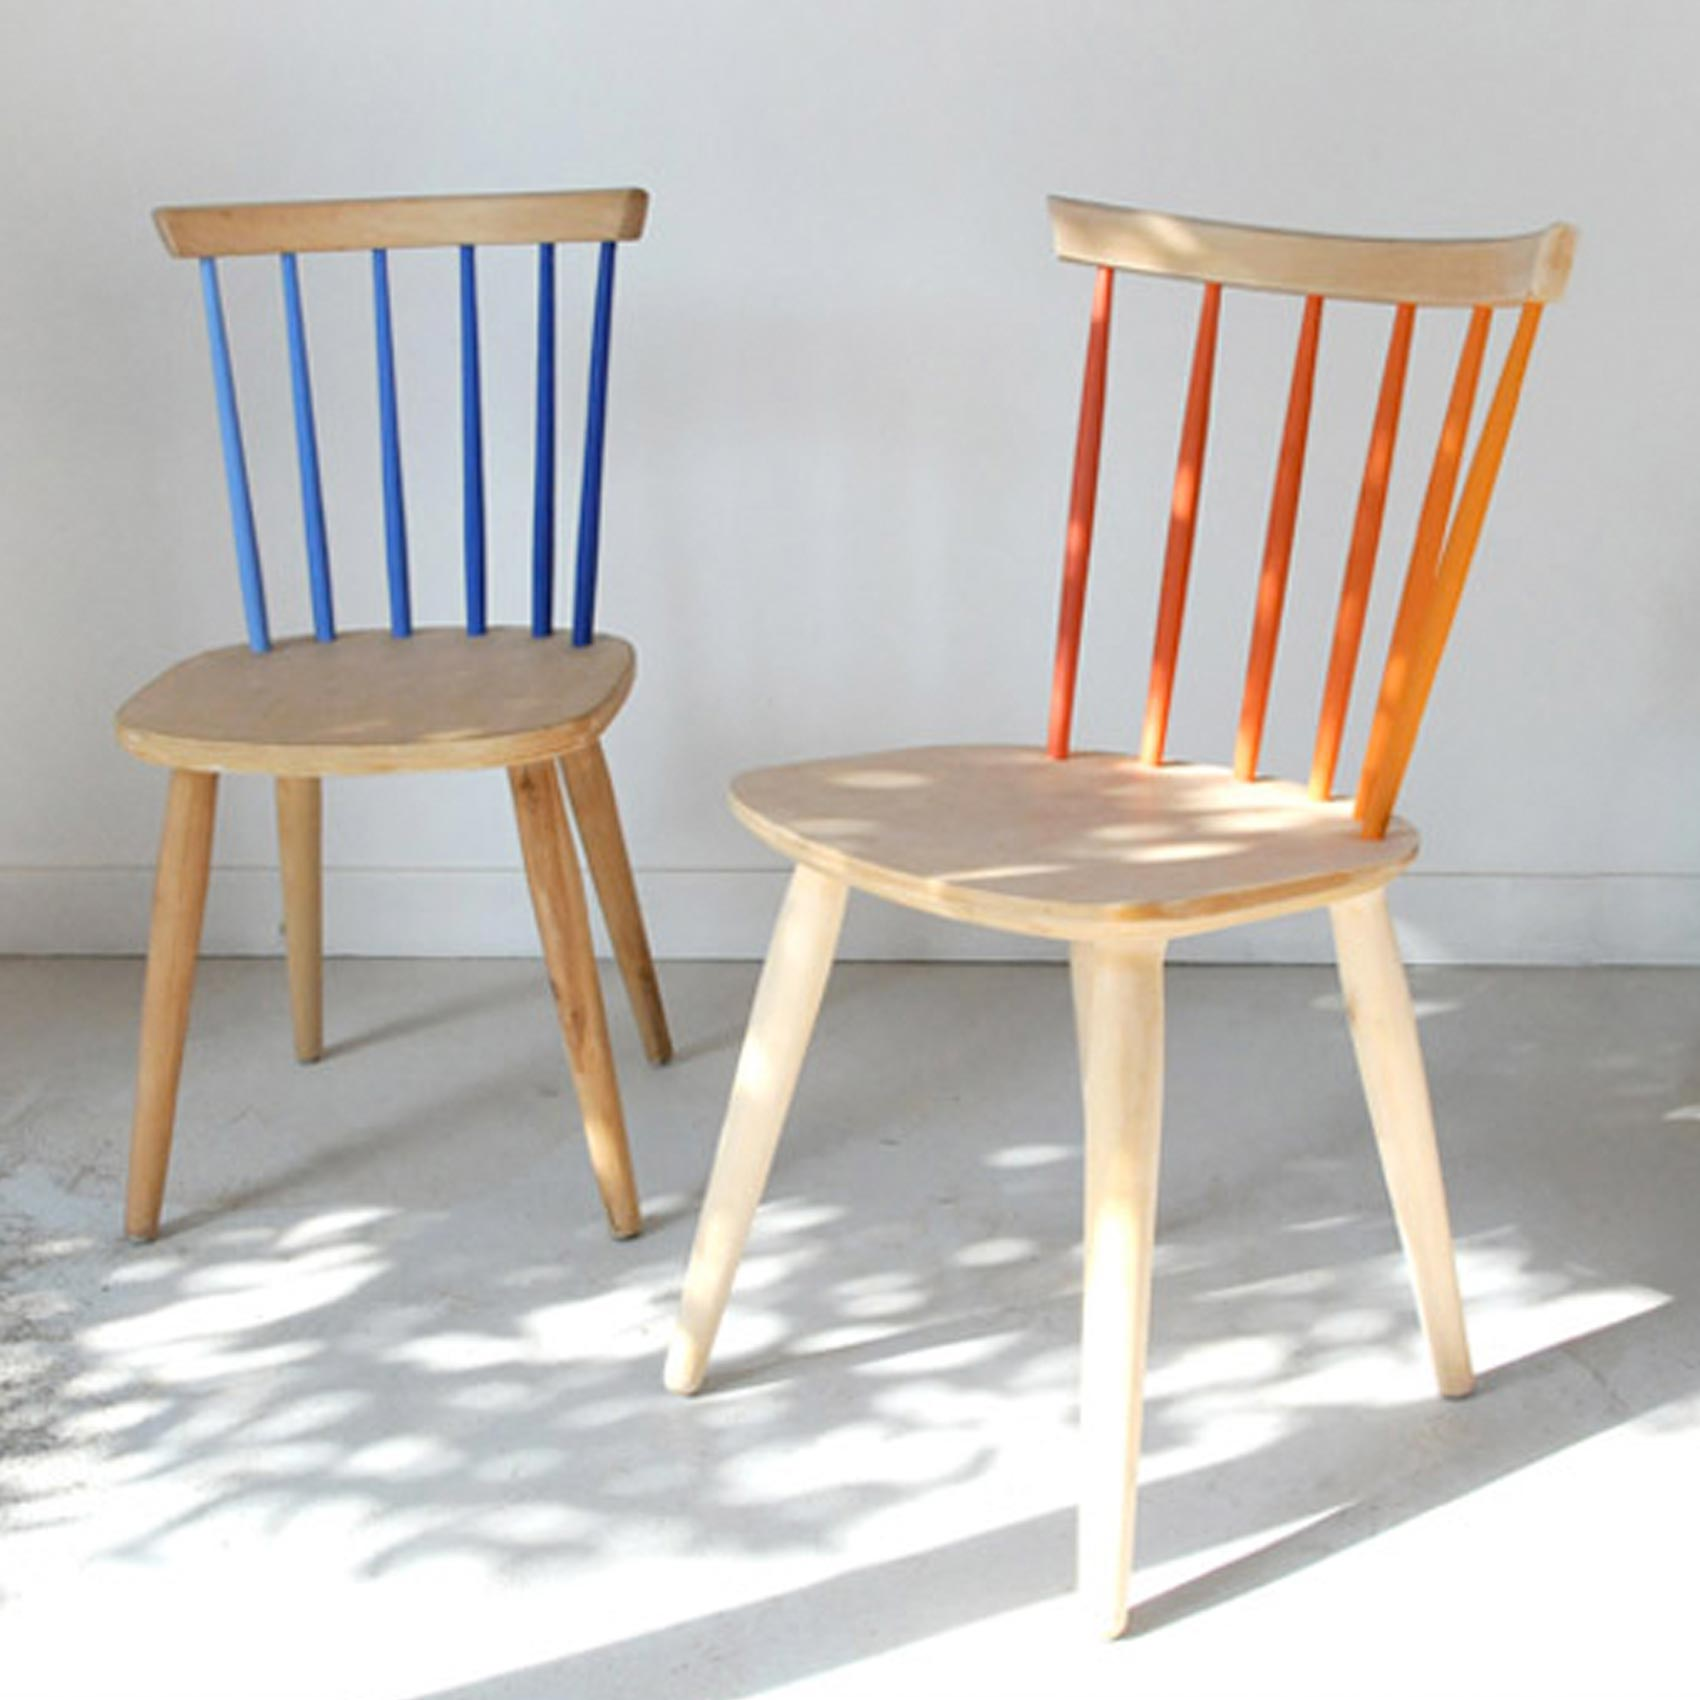 https://www.improvisedlife.com/2010/11/14/copy-this-partially-painted-chairs/